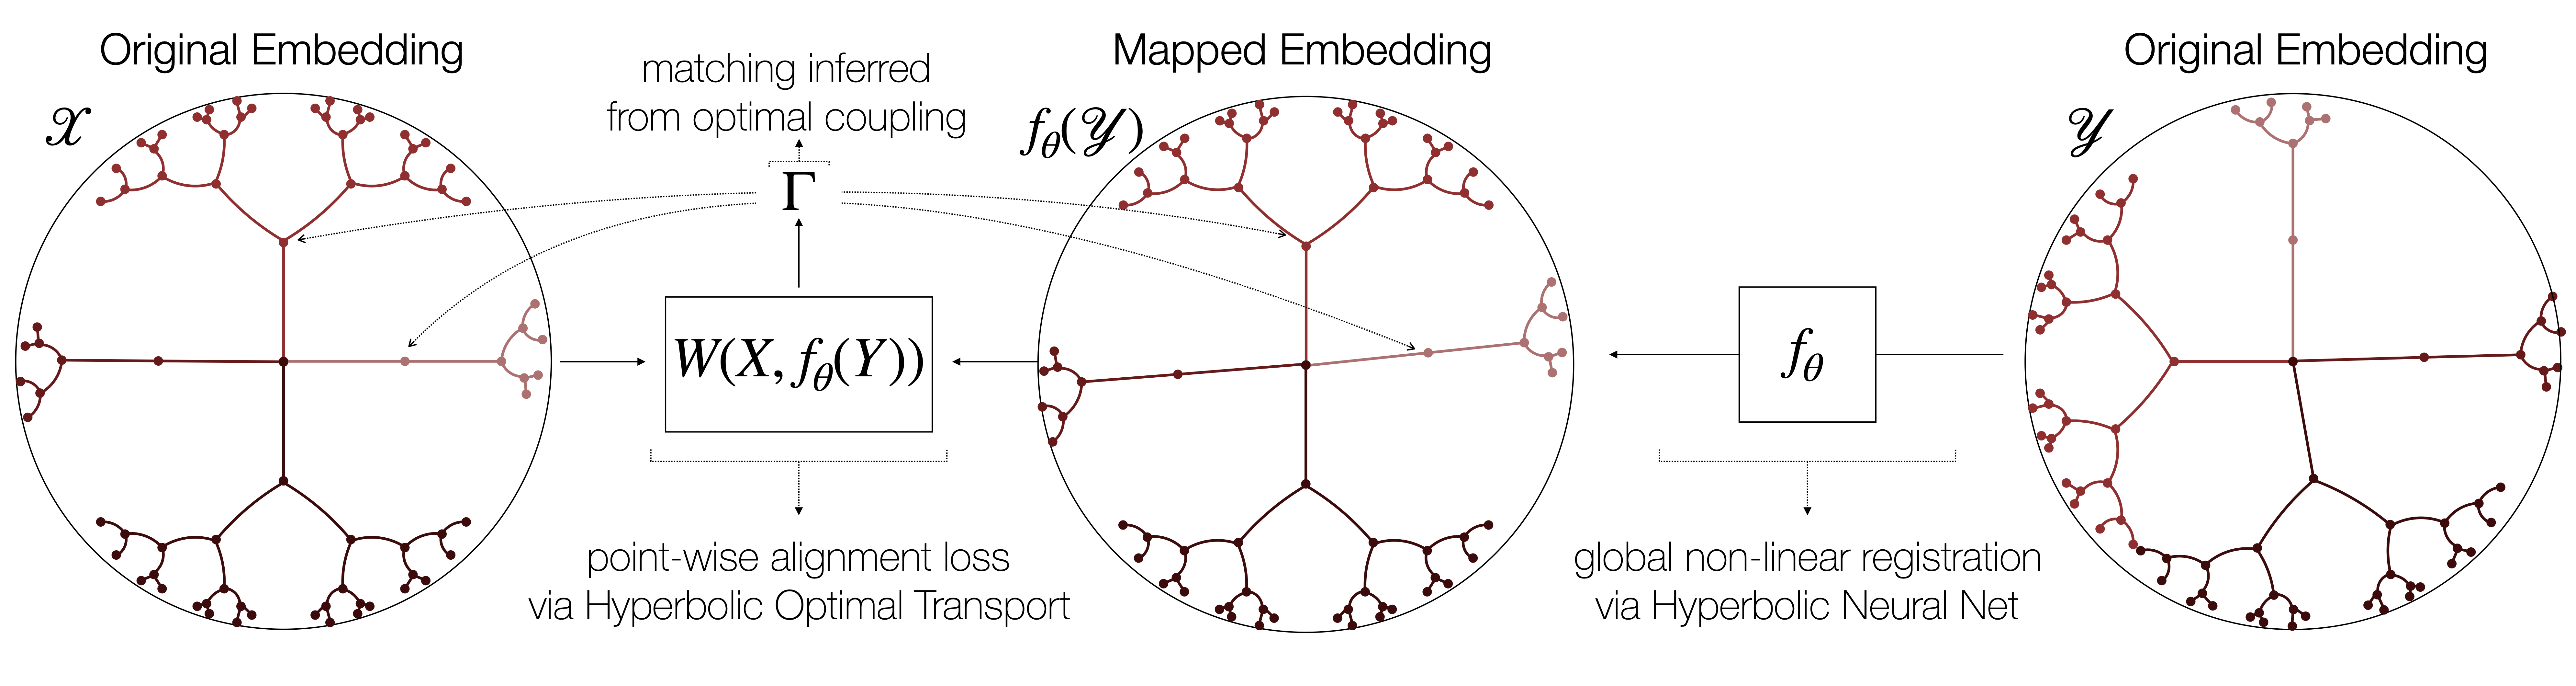 Schematic representation of the proposed approach. A deep network globally registers the two hyperbolic embedding spaces (X and Y) by correcting for non-linear branch permutations, so that source and mapped target points can be aligned using a hyperbolic variant of Wasserstein distance. Training is done end-to-end in a fully unsupervised way – no prior known correspondences between the hierarchies are assumed.